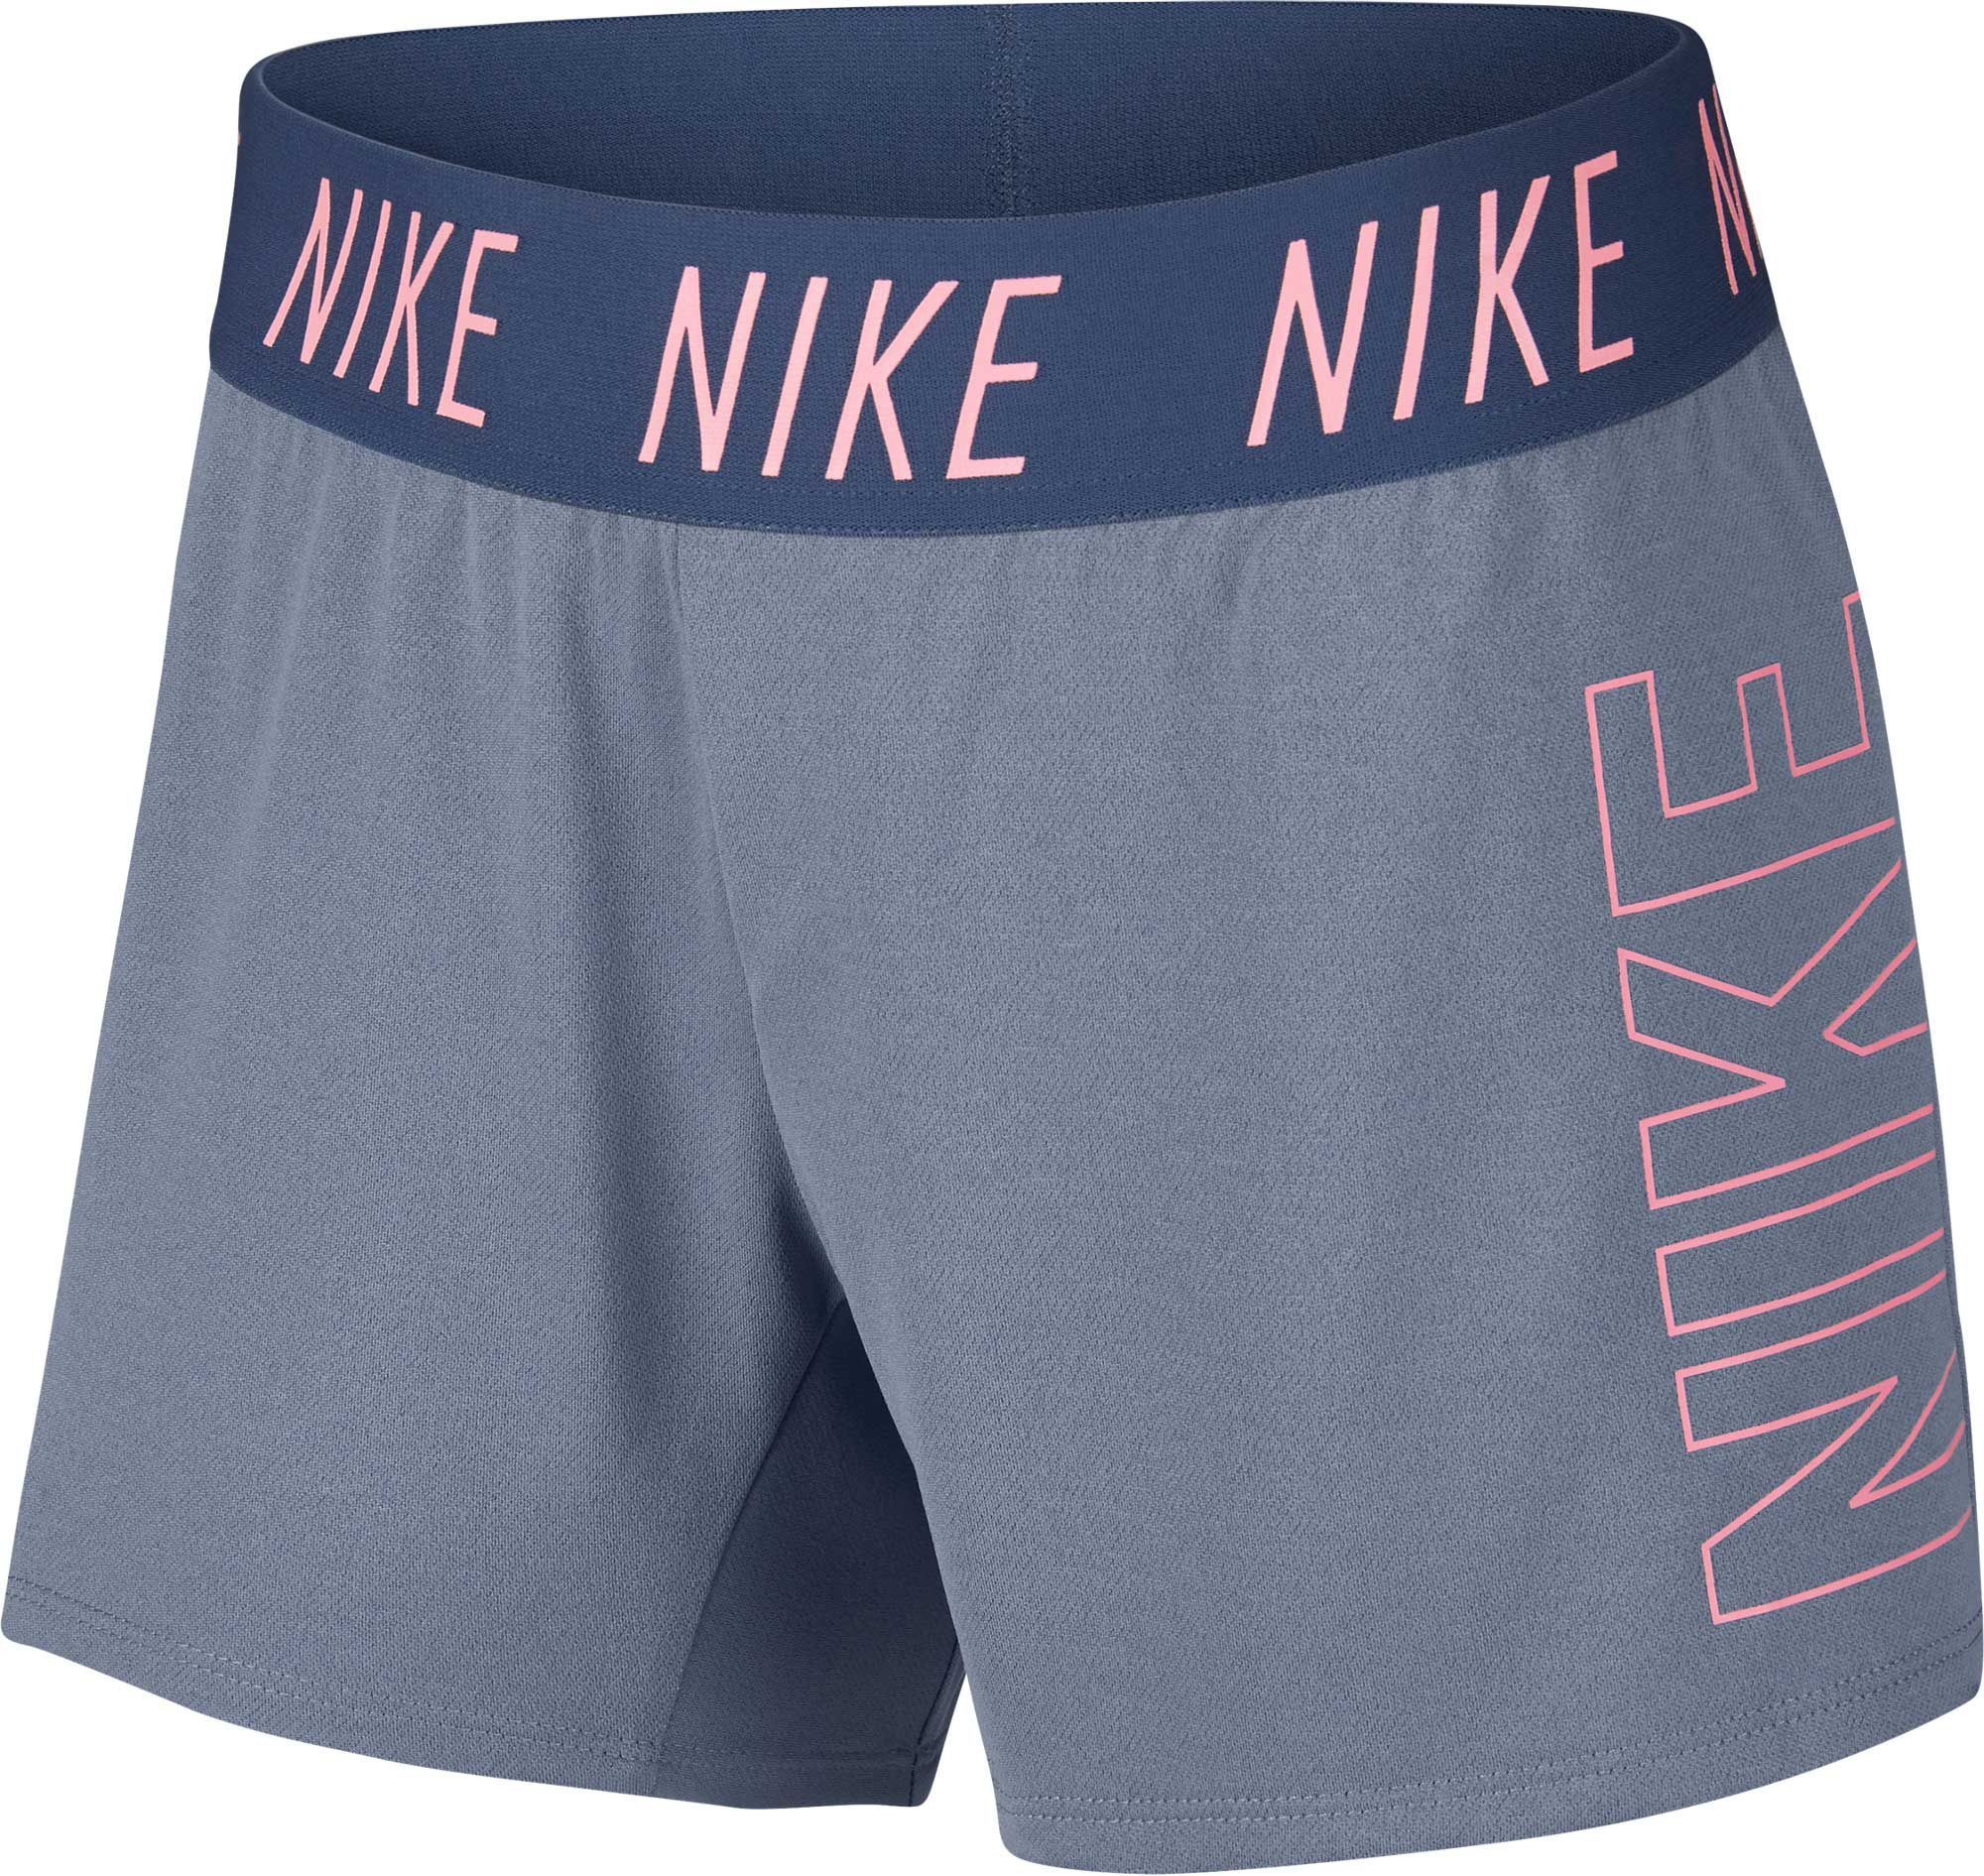 e6823f76 Nike Girls' Dry Trophy Graphic Shorts, Size: XS, Blue in 2019 ...